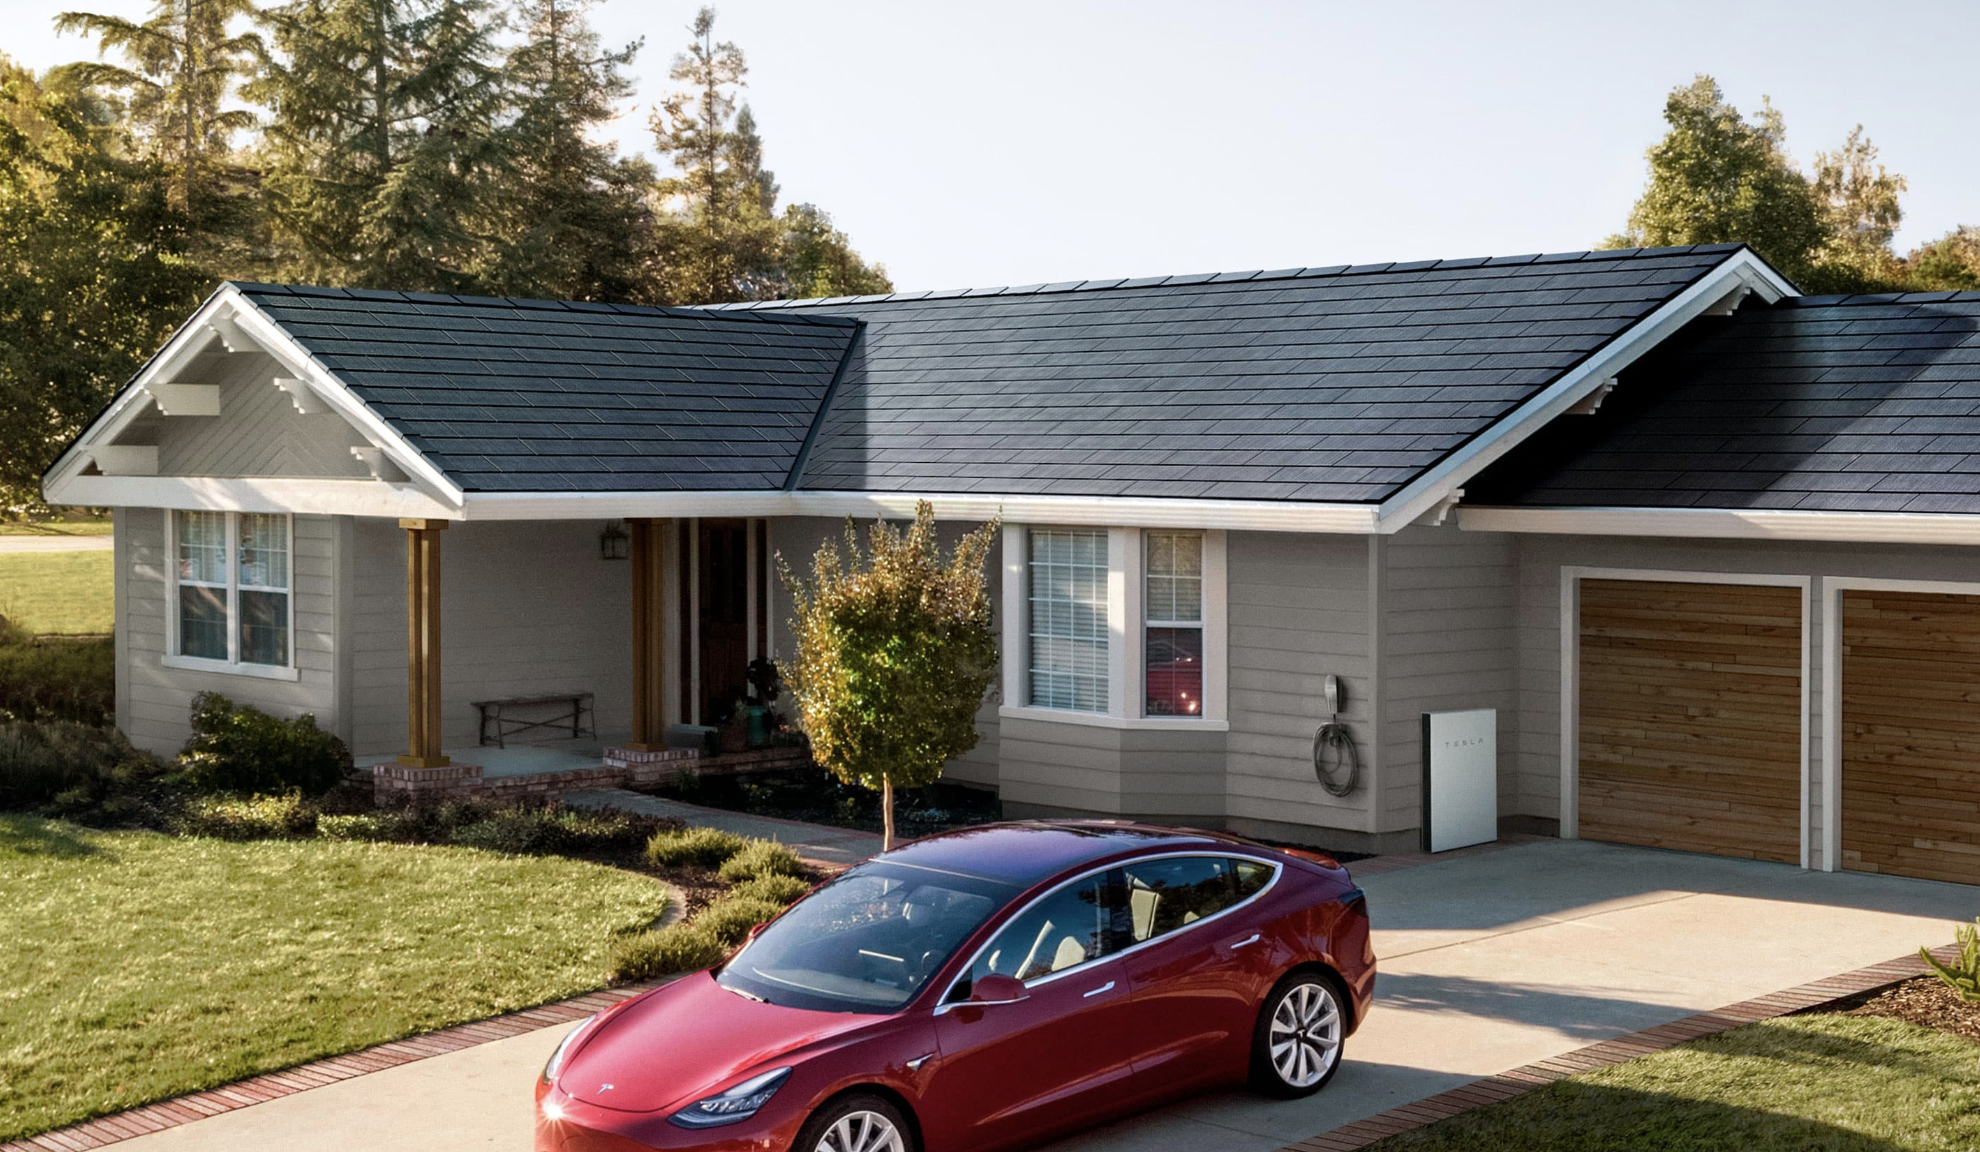 Tesla Unveils Its Easier To Install Solar Roof Solar Roof Tiles Solar Roof Solar Tiles